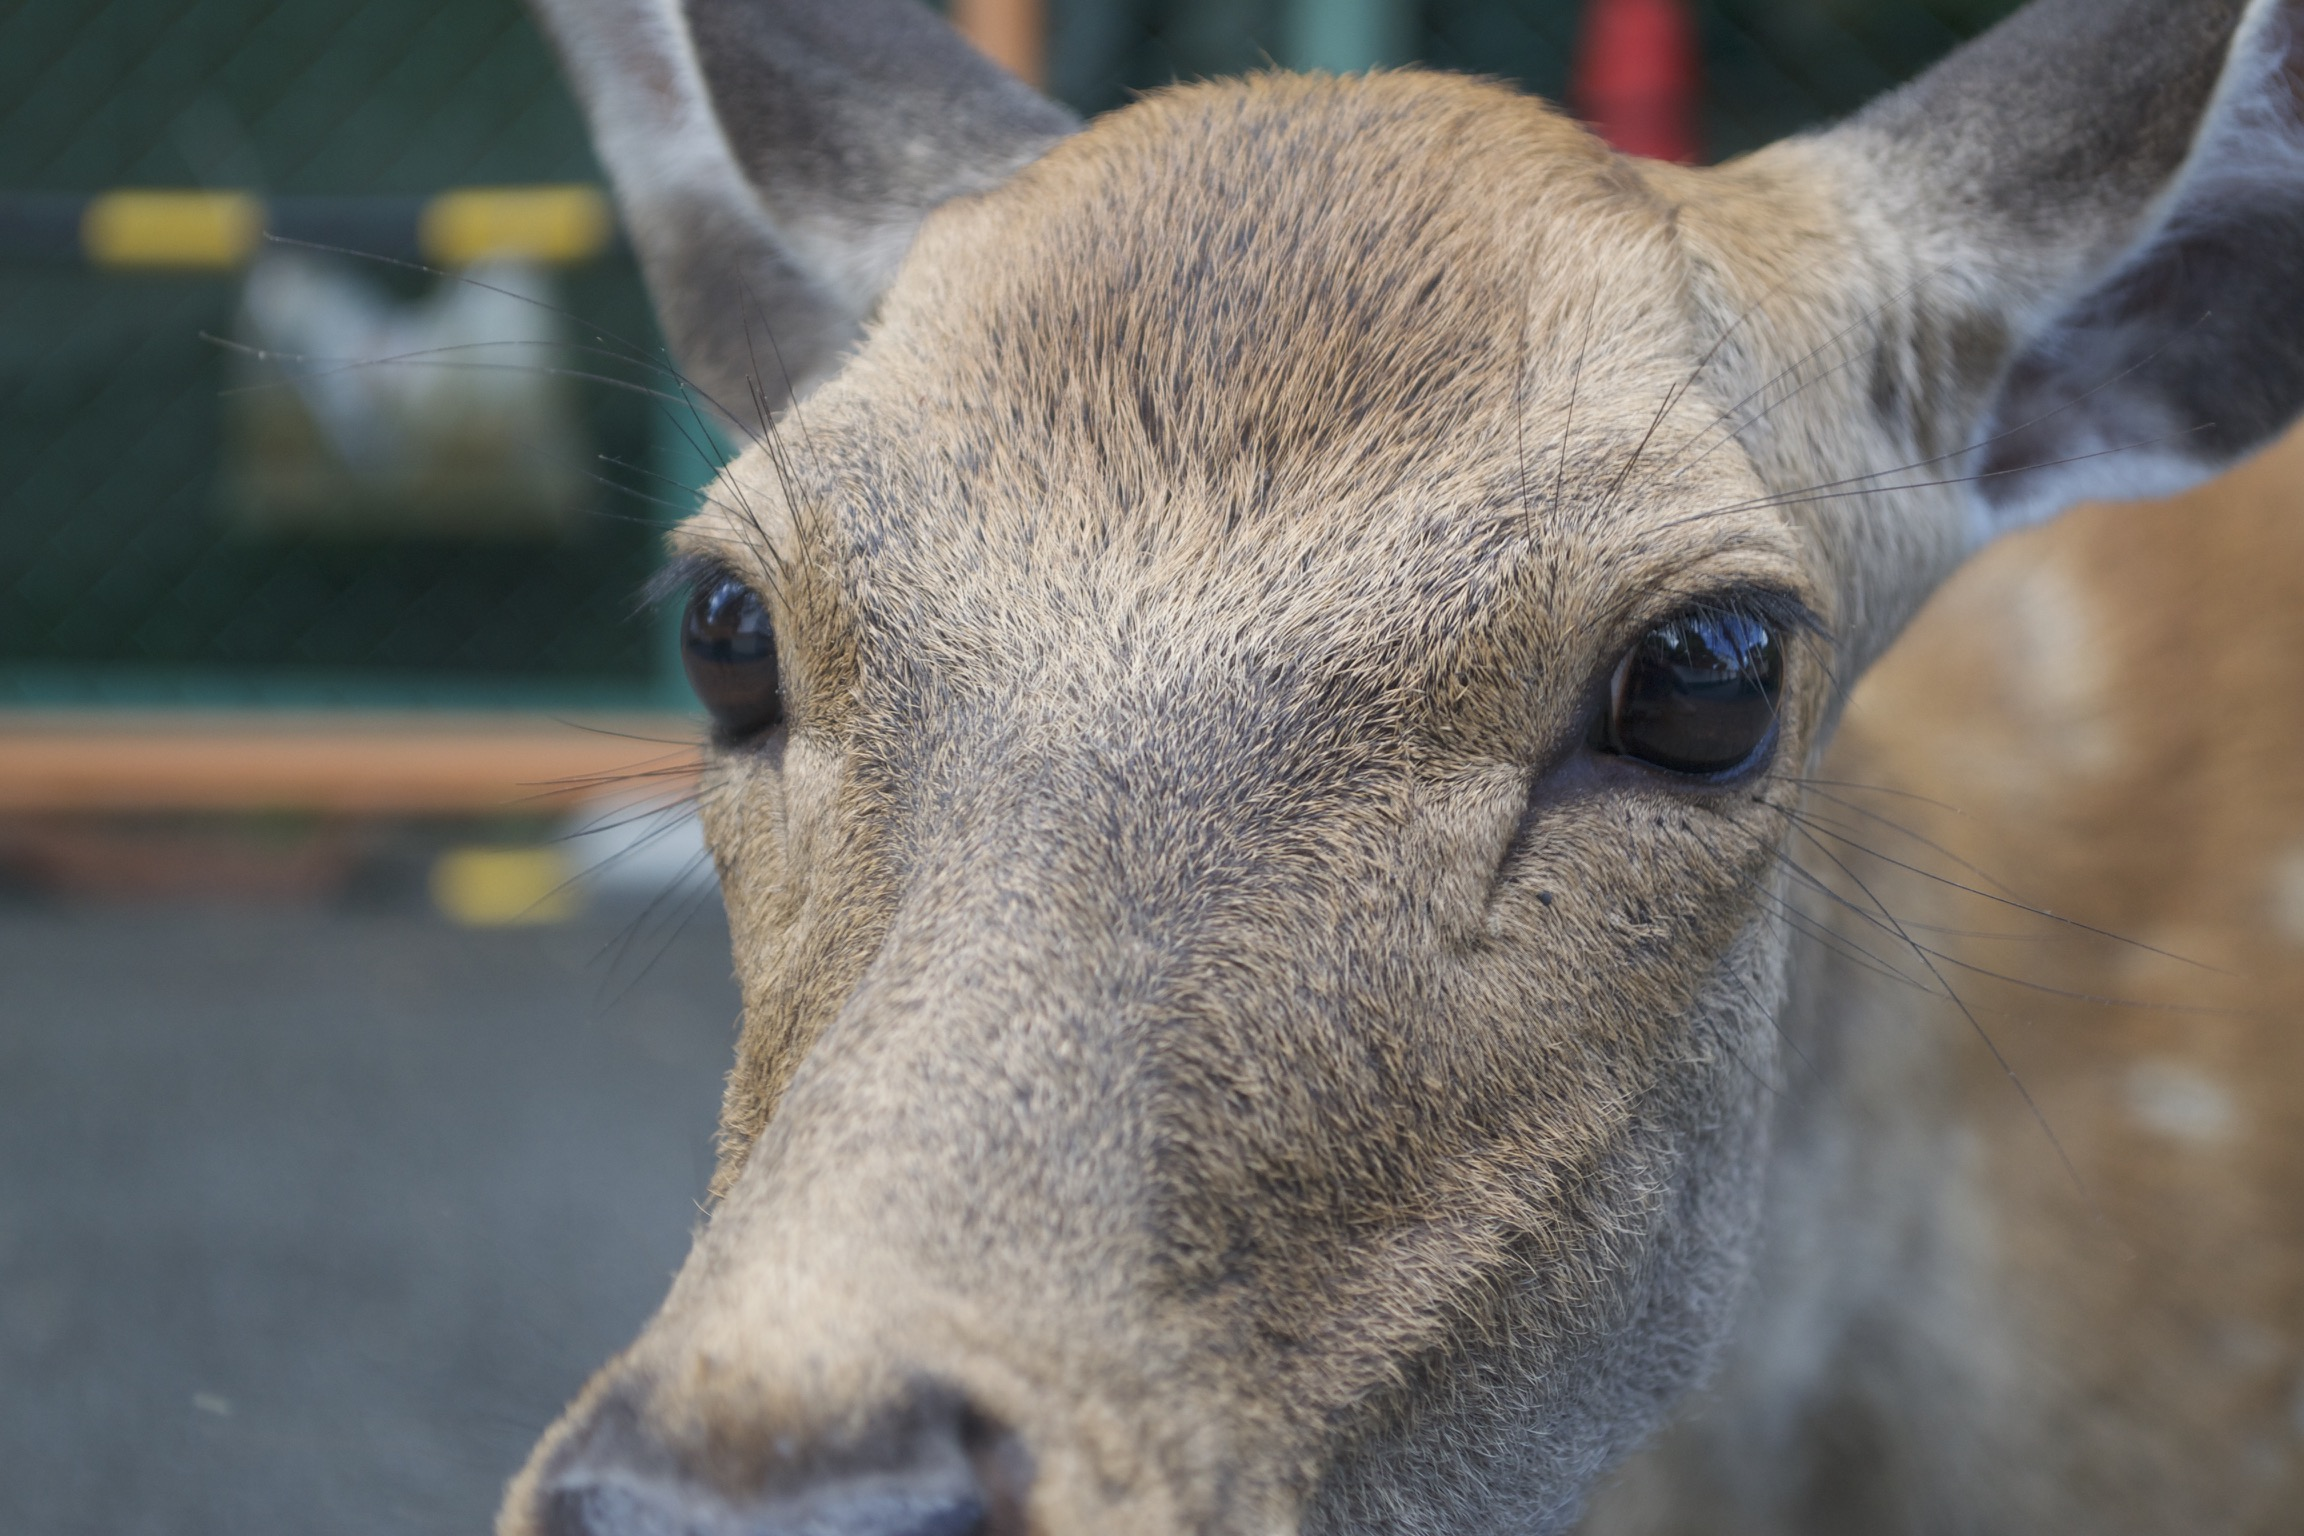 A close-up of a deer's snout and face